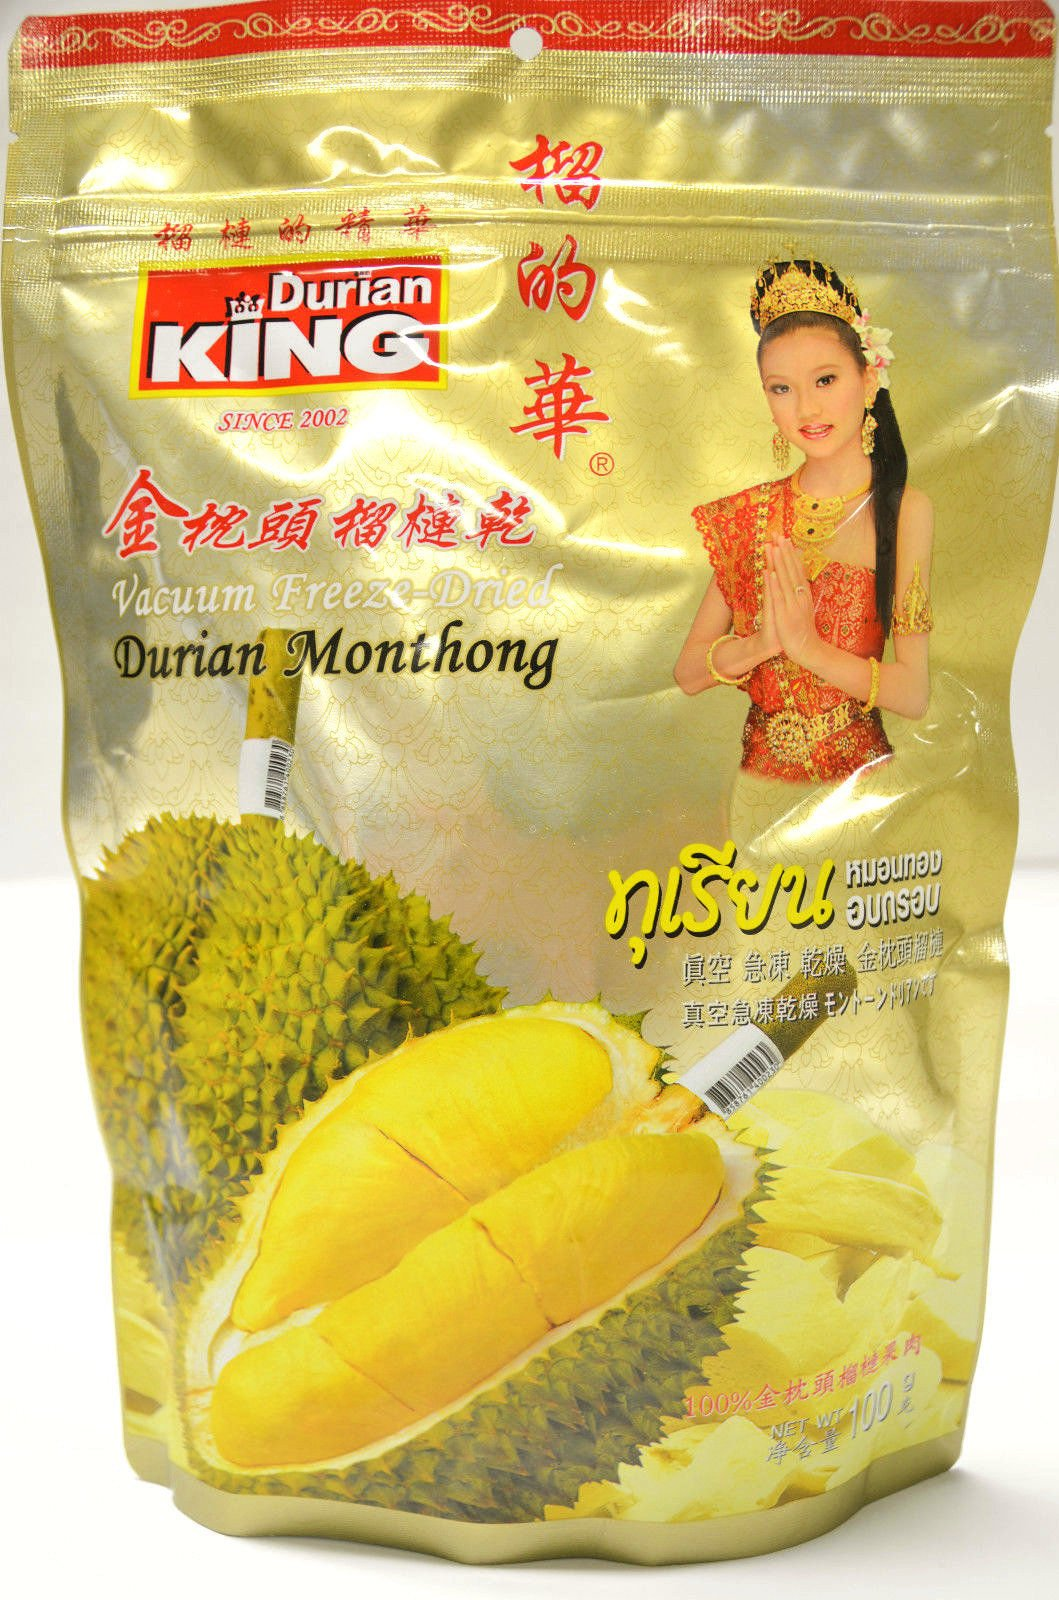 Durian King Snack Food King Vacuum Freeze Dried Durian 100g (Pack of 2)